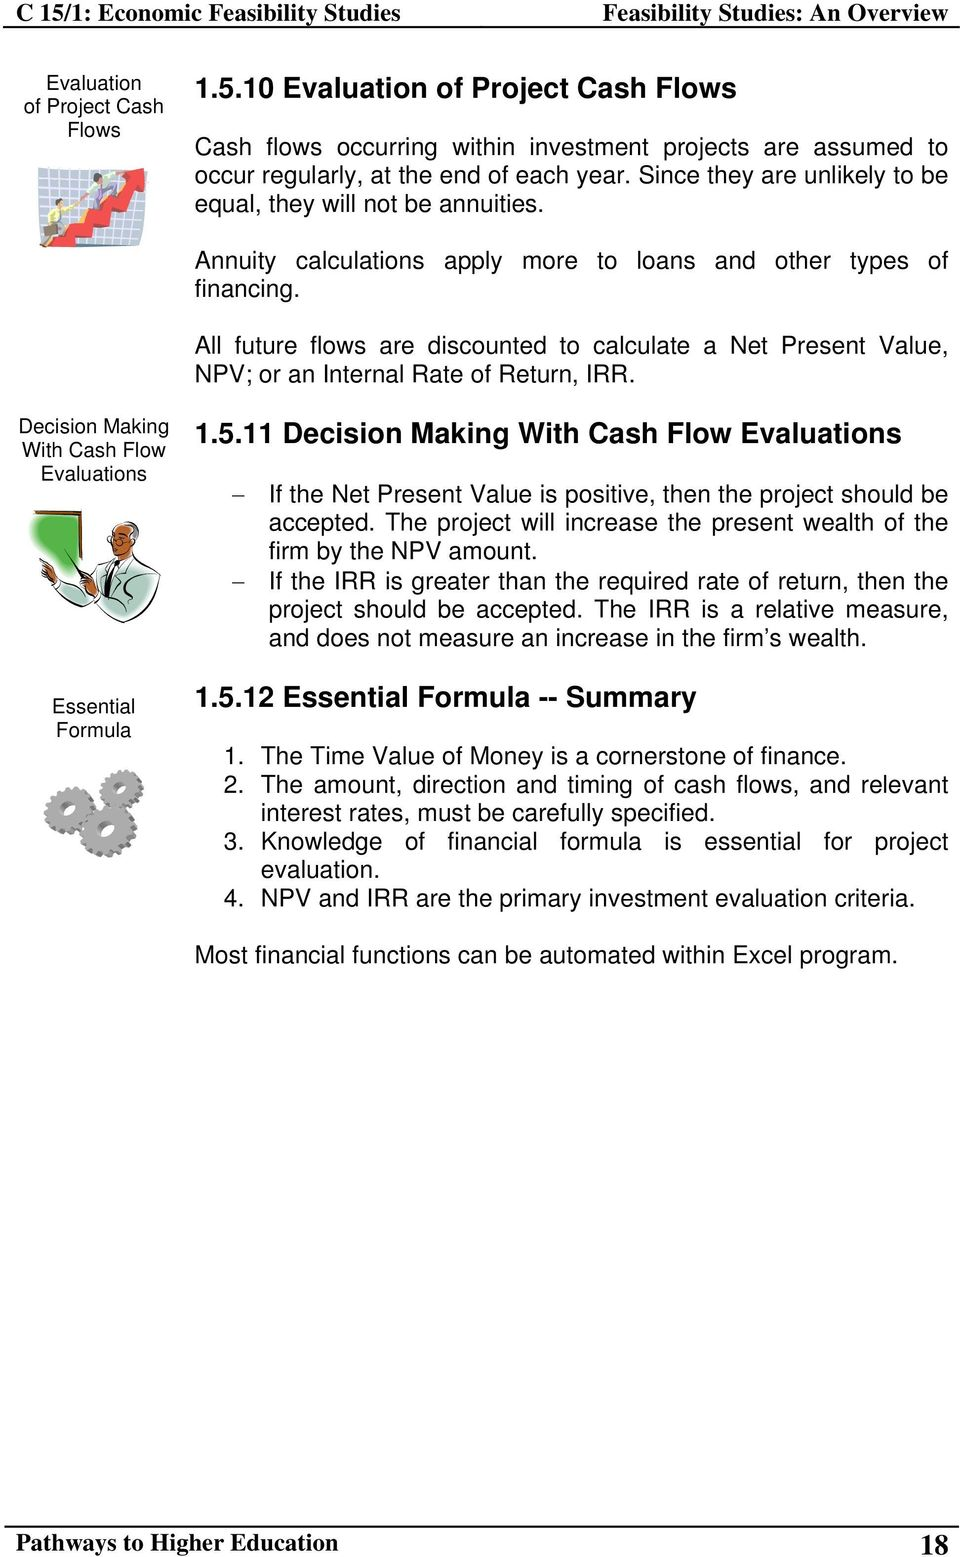 All future flows are discounted to calculate a Net Present Value, NPV; or an Internal Rate of Return, IRR. Decision Making With Cash Flow Evaluations Essential Formula 1.5.